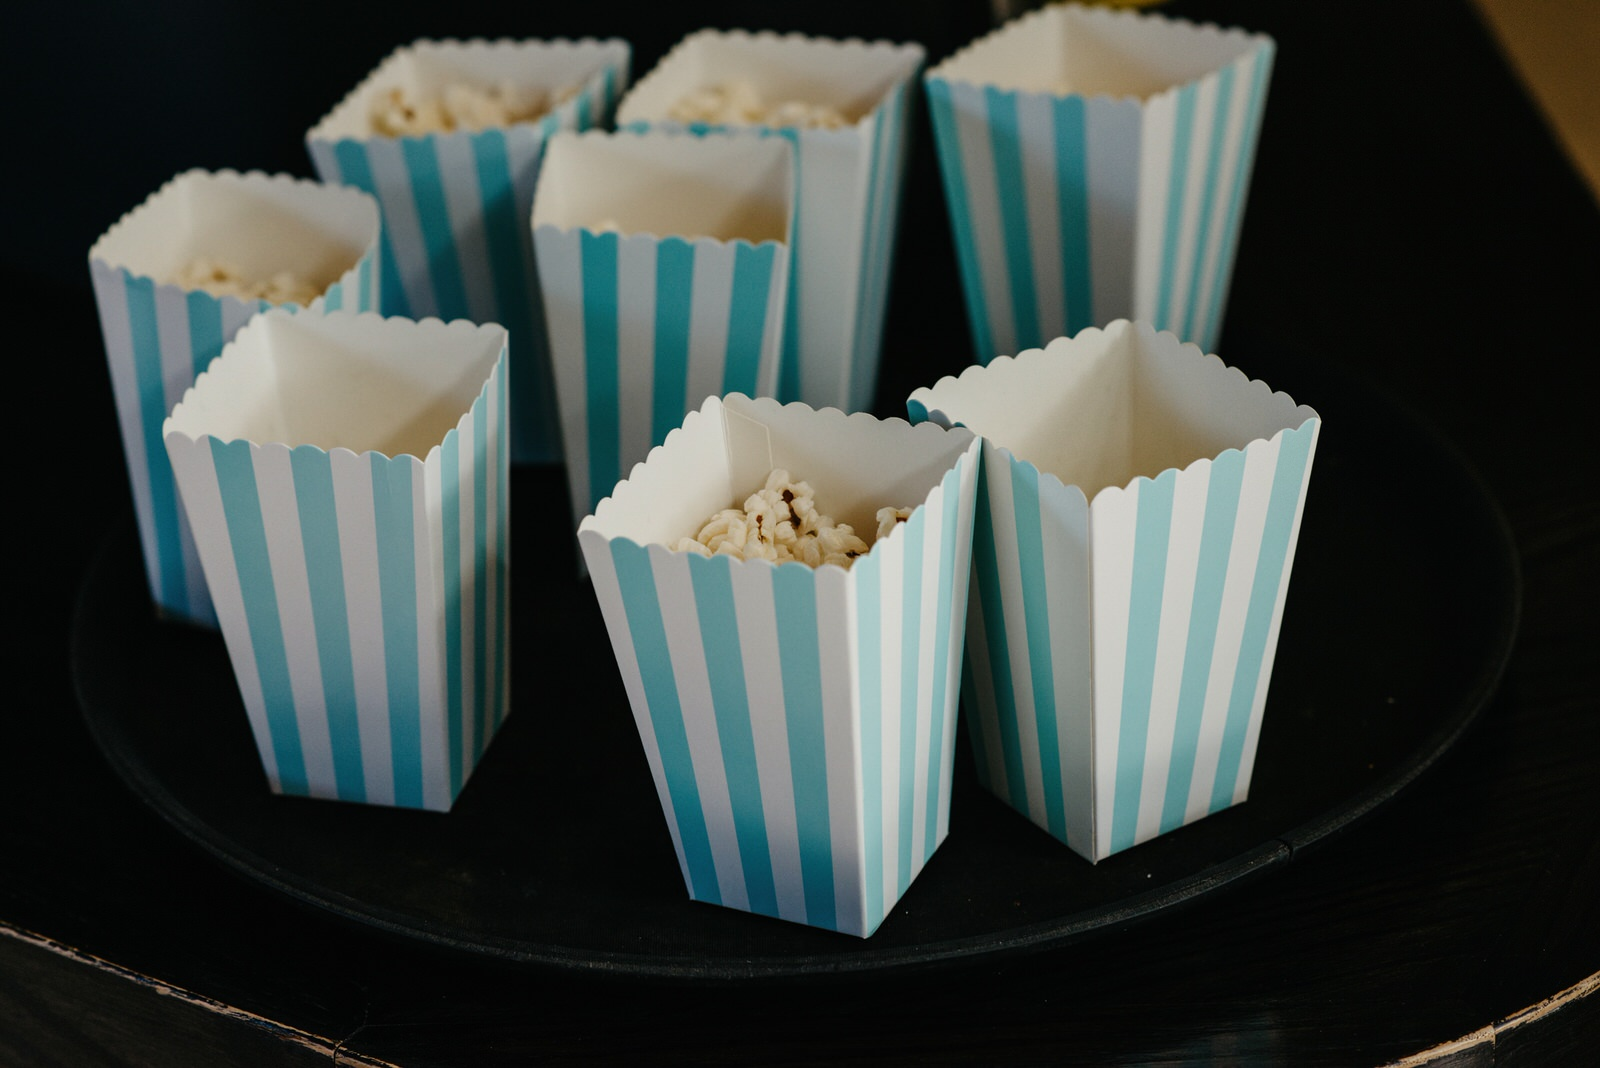 Popcorn at the Royal College of Music and Drama wedding